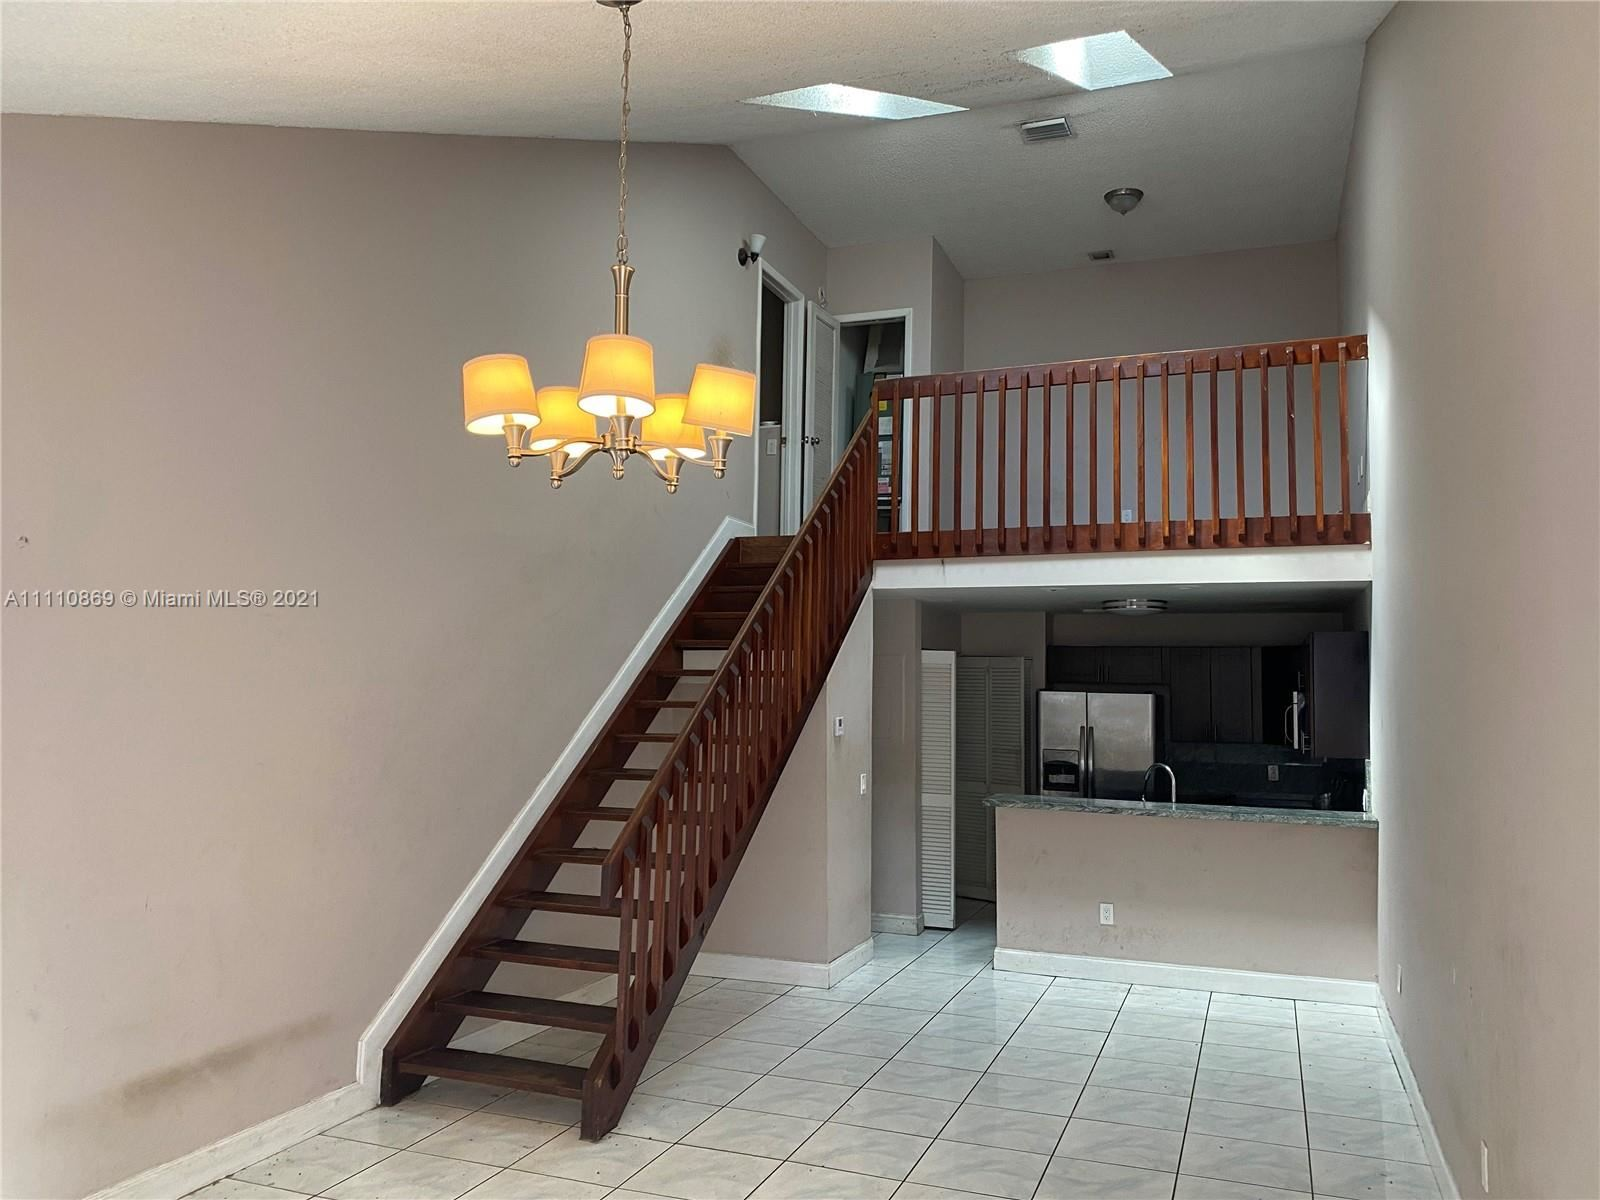 Photo of 1816 Runners Way #1816 Runners way, North Lauderdale, FL 33068 (MLS # A11110869)